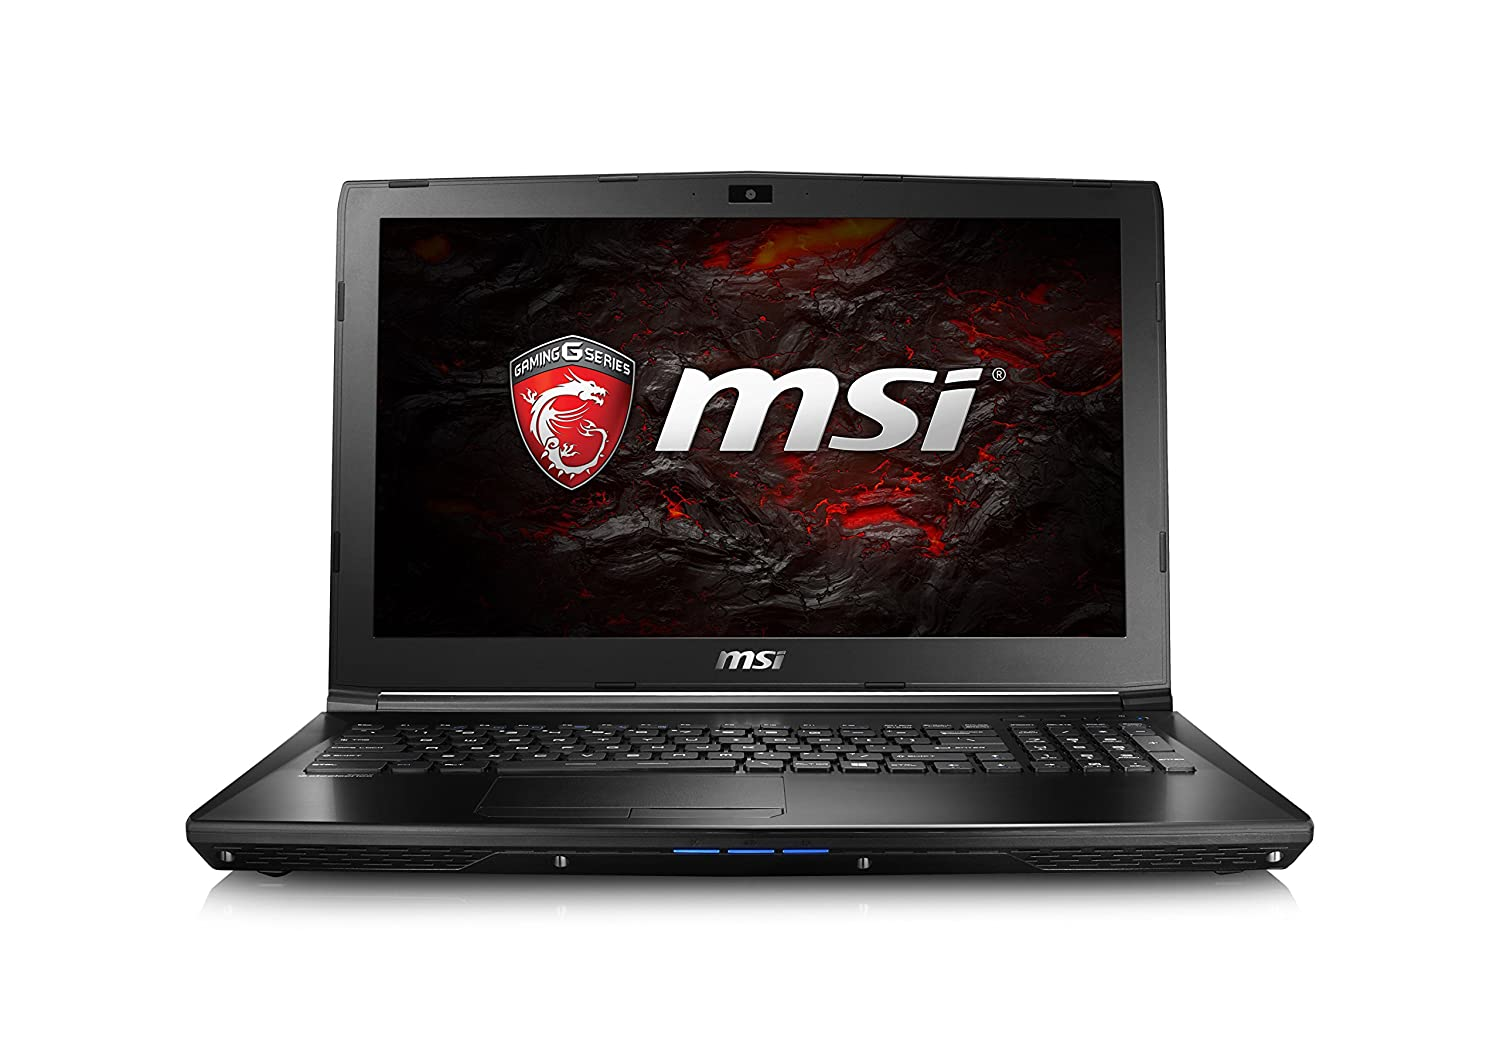 MSI GL62 7RD-859IT Notebook, Display da 15.6, i5-7300HQ, 8 GB, Nvidia GTX 1050